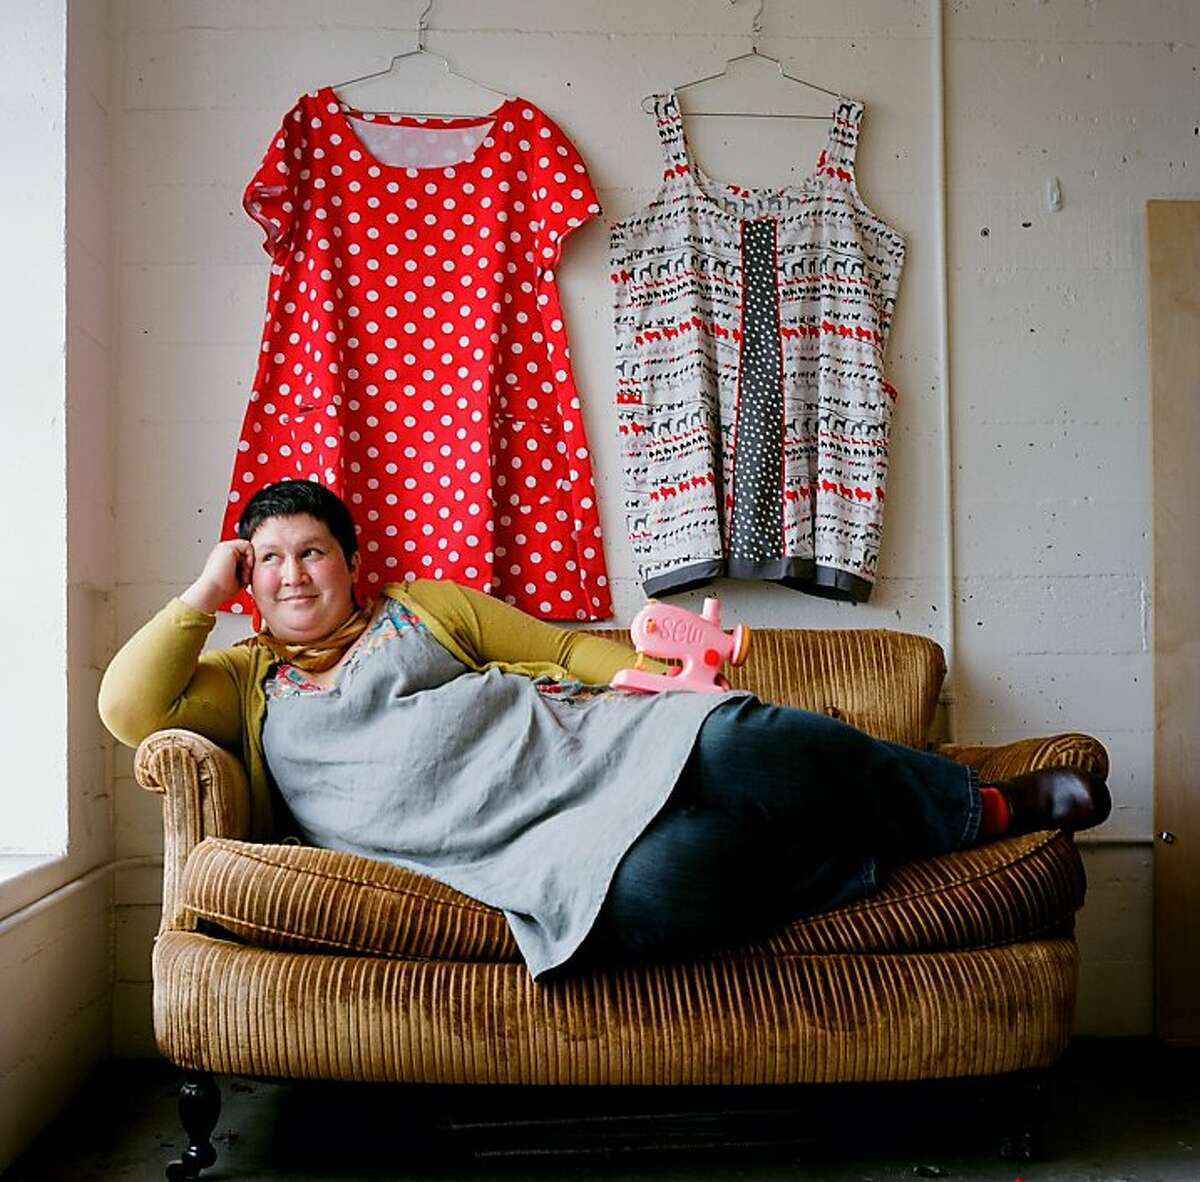 Sonya Philip, who recently sewed 100 dresses in one year, poses in the studio.